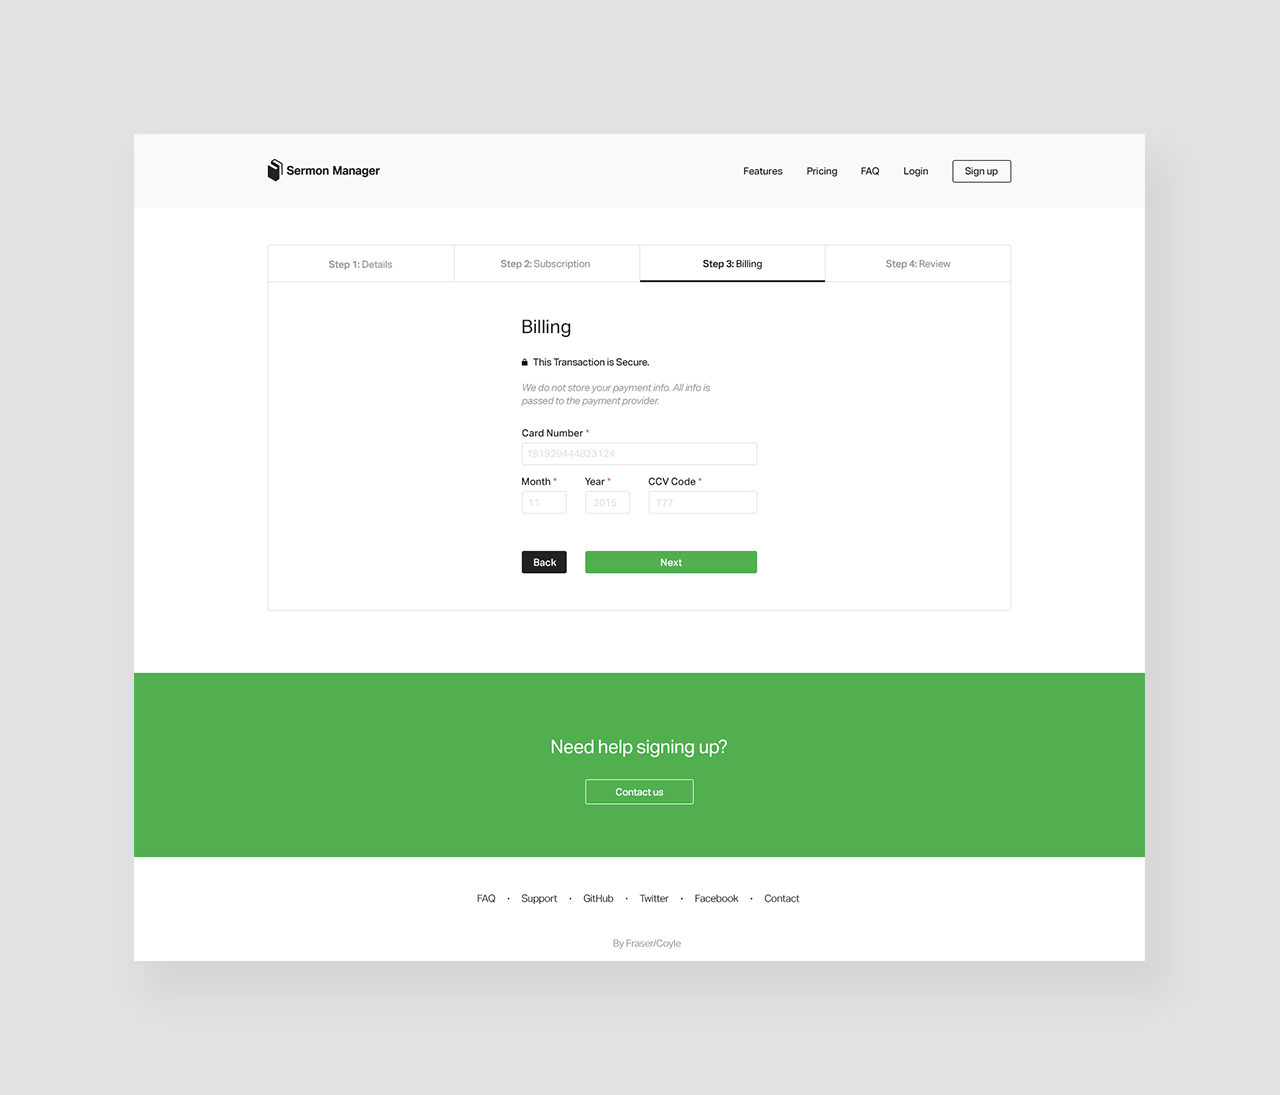 sermonmanager-mockup-website-signup-3